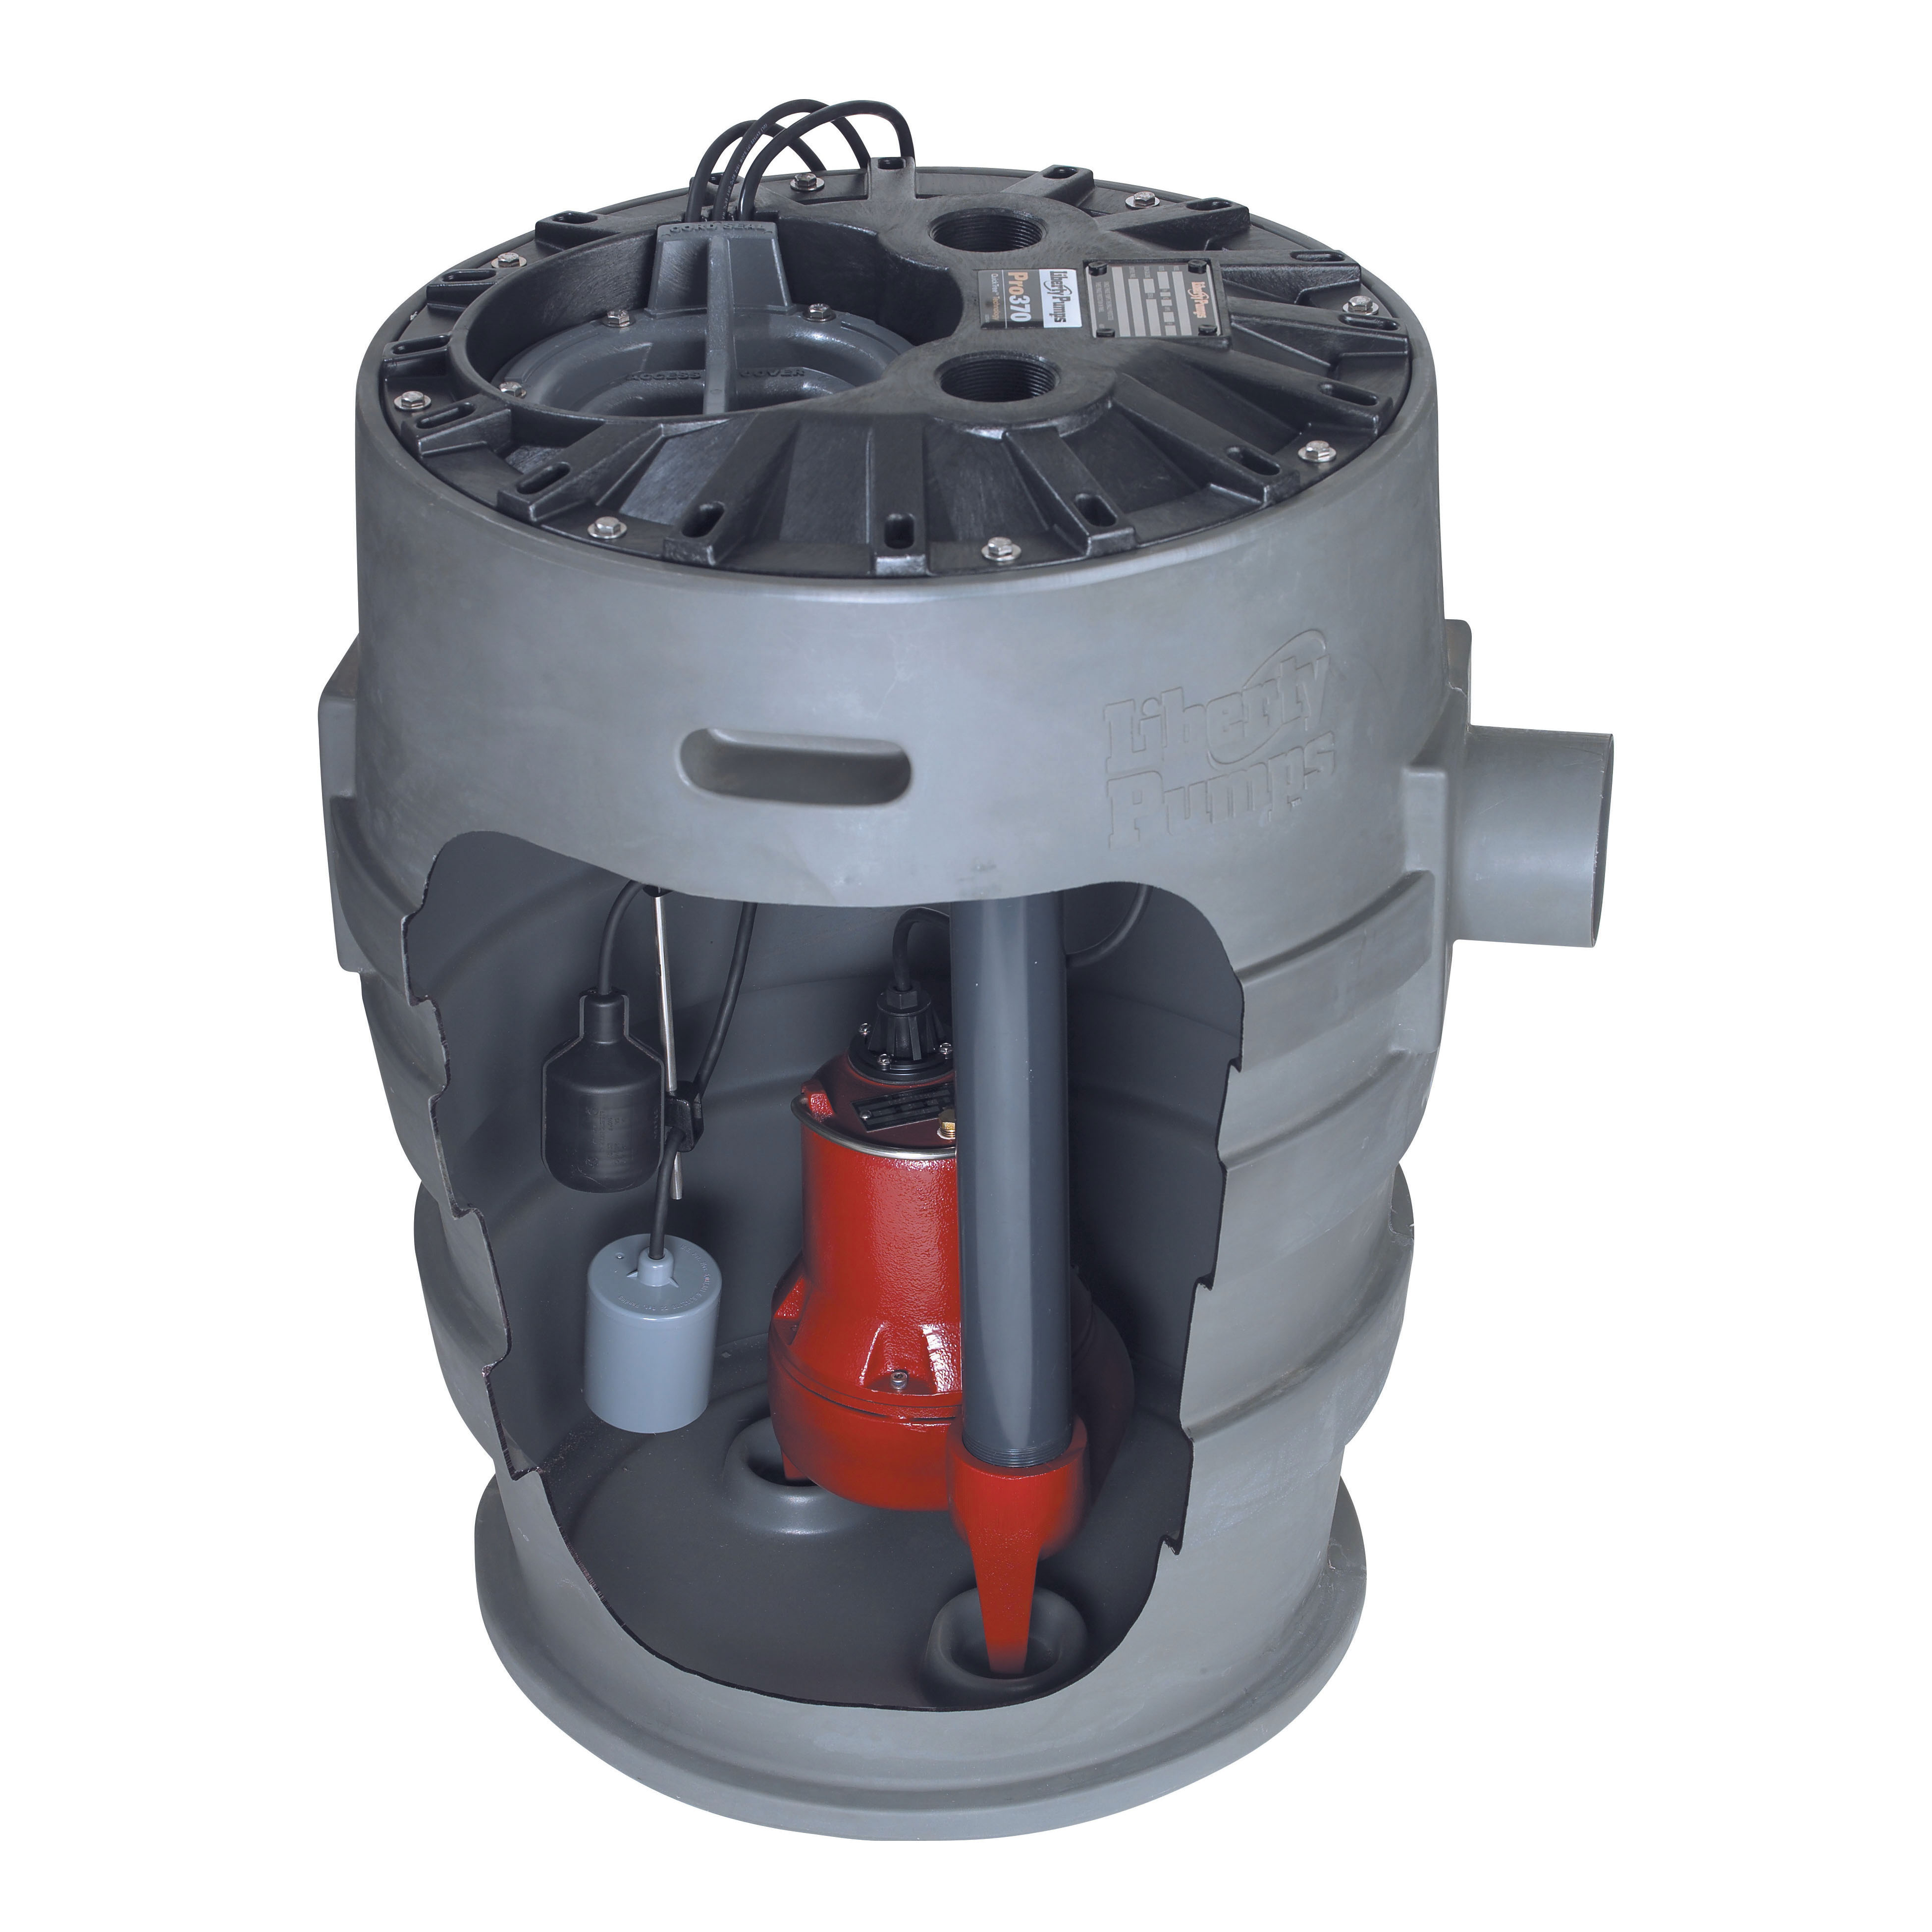 Liberty Pumps® P372LE51 Pro370 Submersible Simplex Sewage System, 2 in Discharge Pipe, 2 in Solid Handling, 1/2 hp, 115 VAC, 1 ph, Polyethylene, 1725 rpm Motor